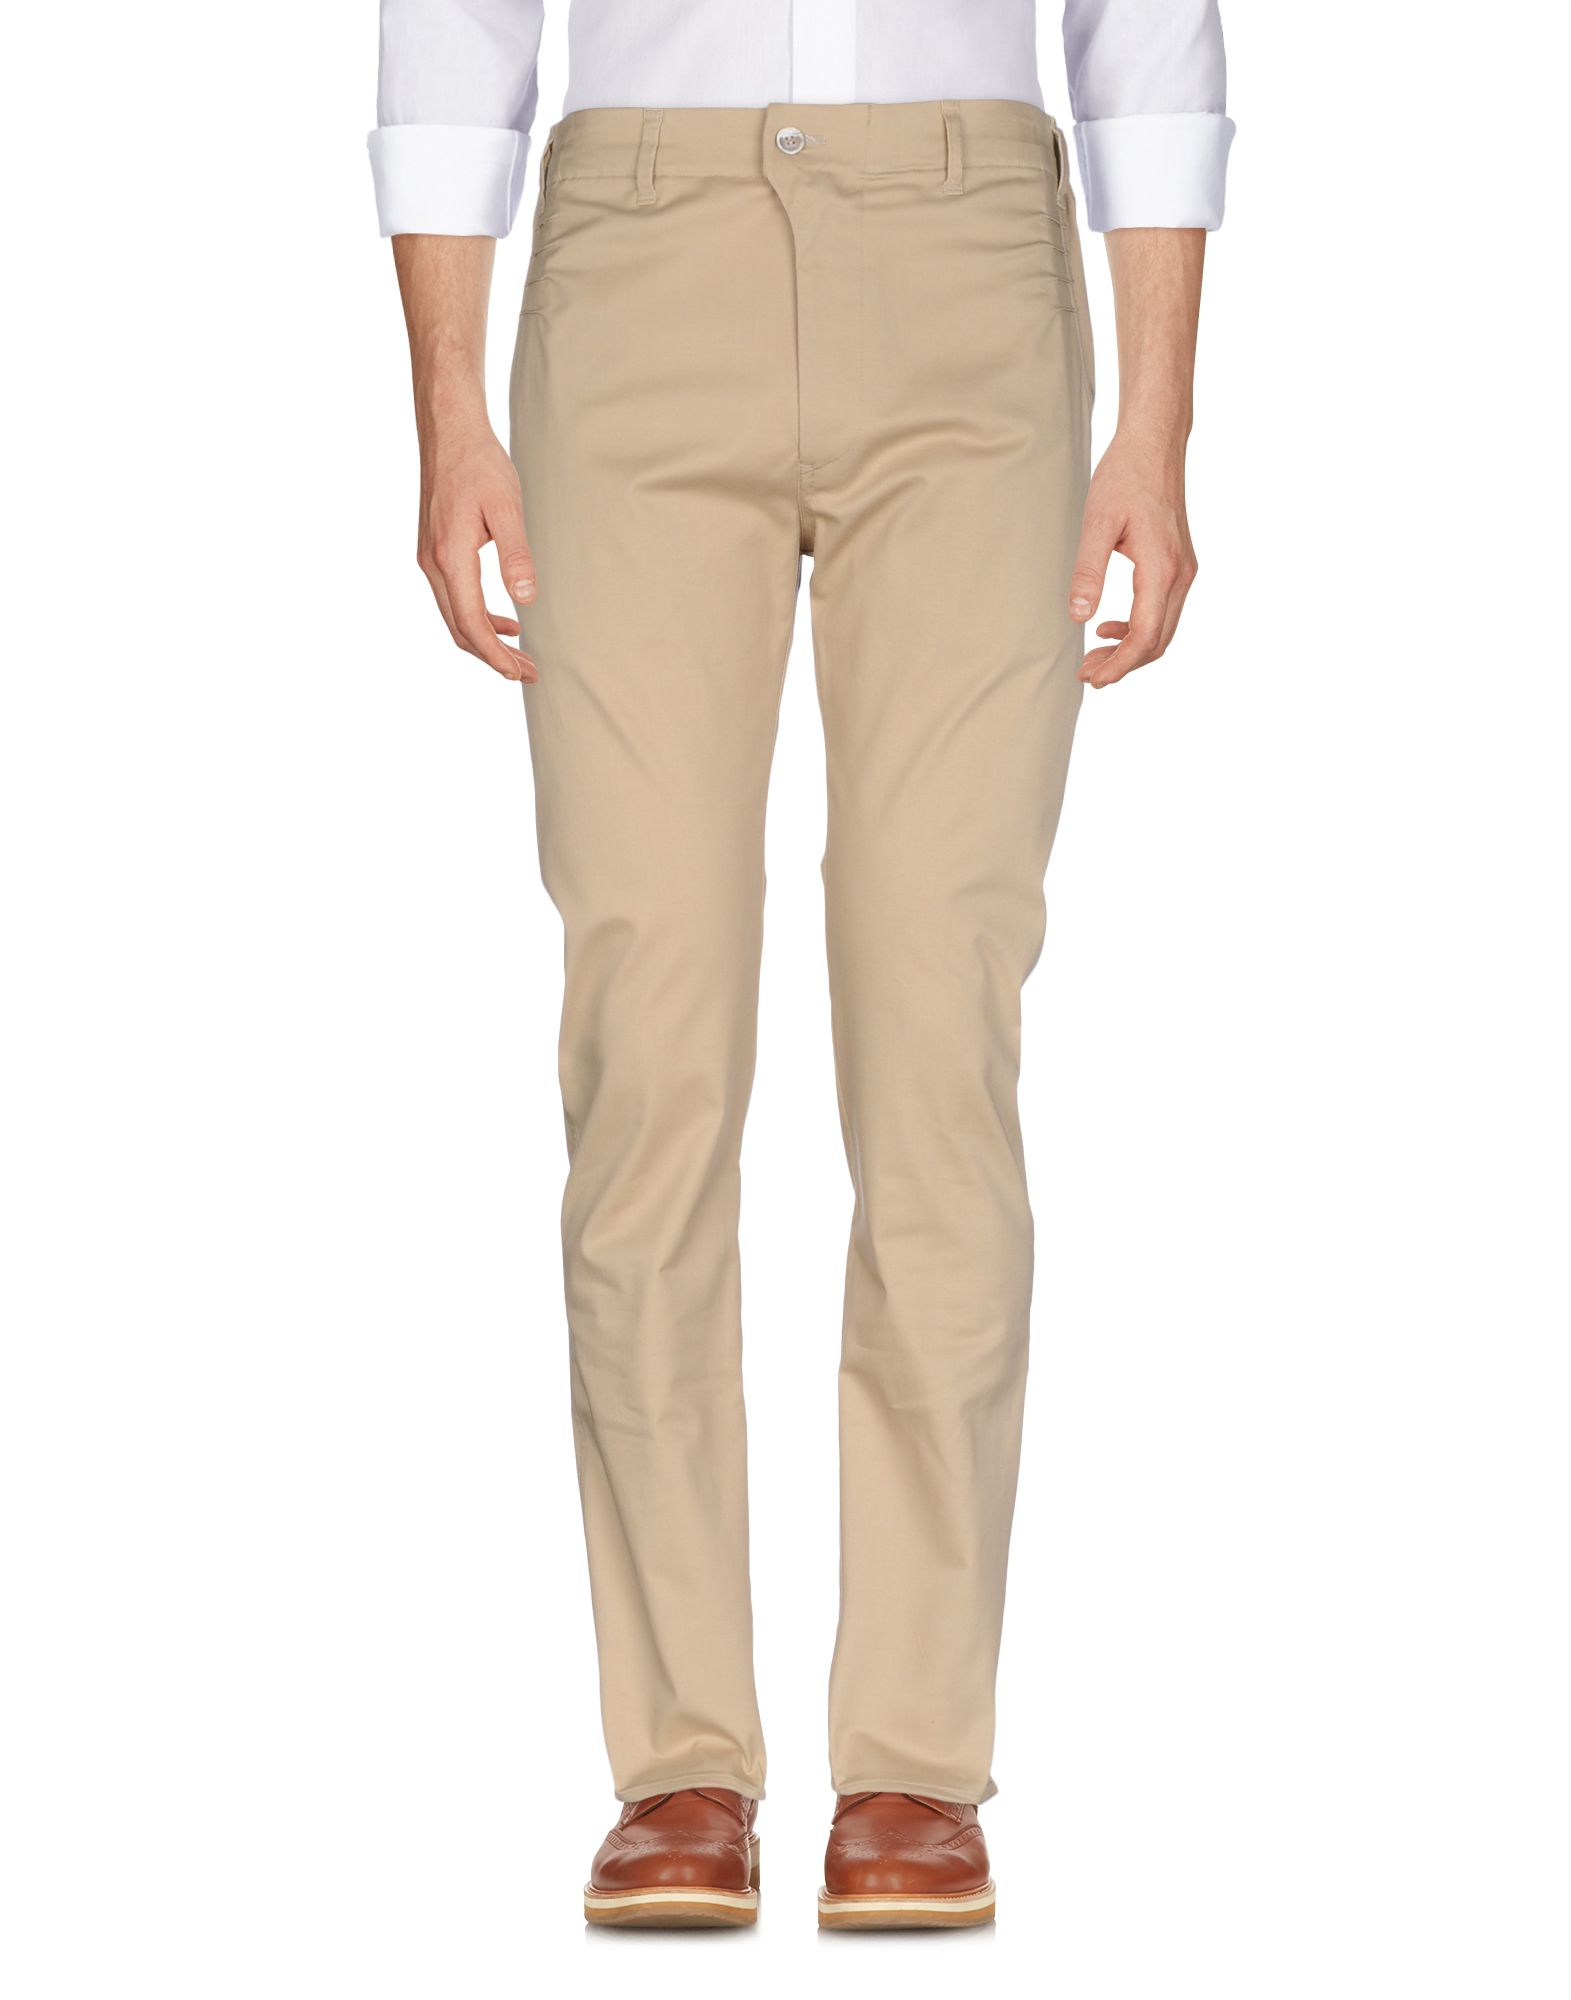 Chinos Julien David Uomo - Acquista online su